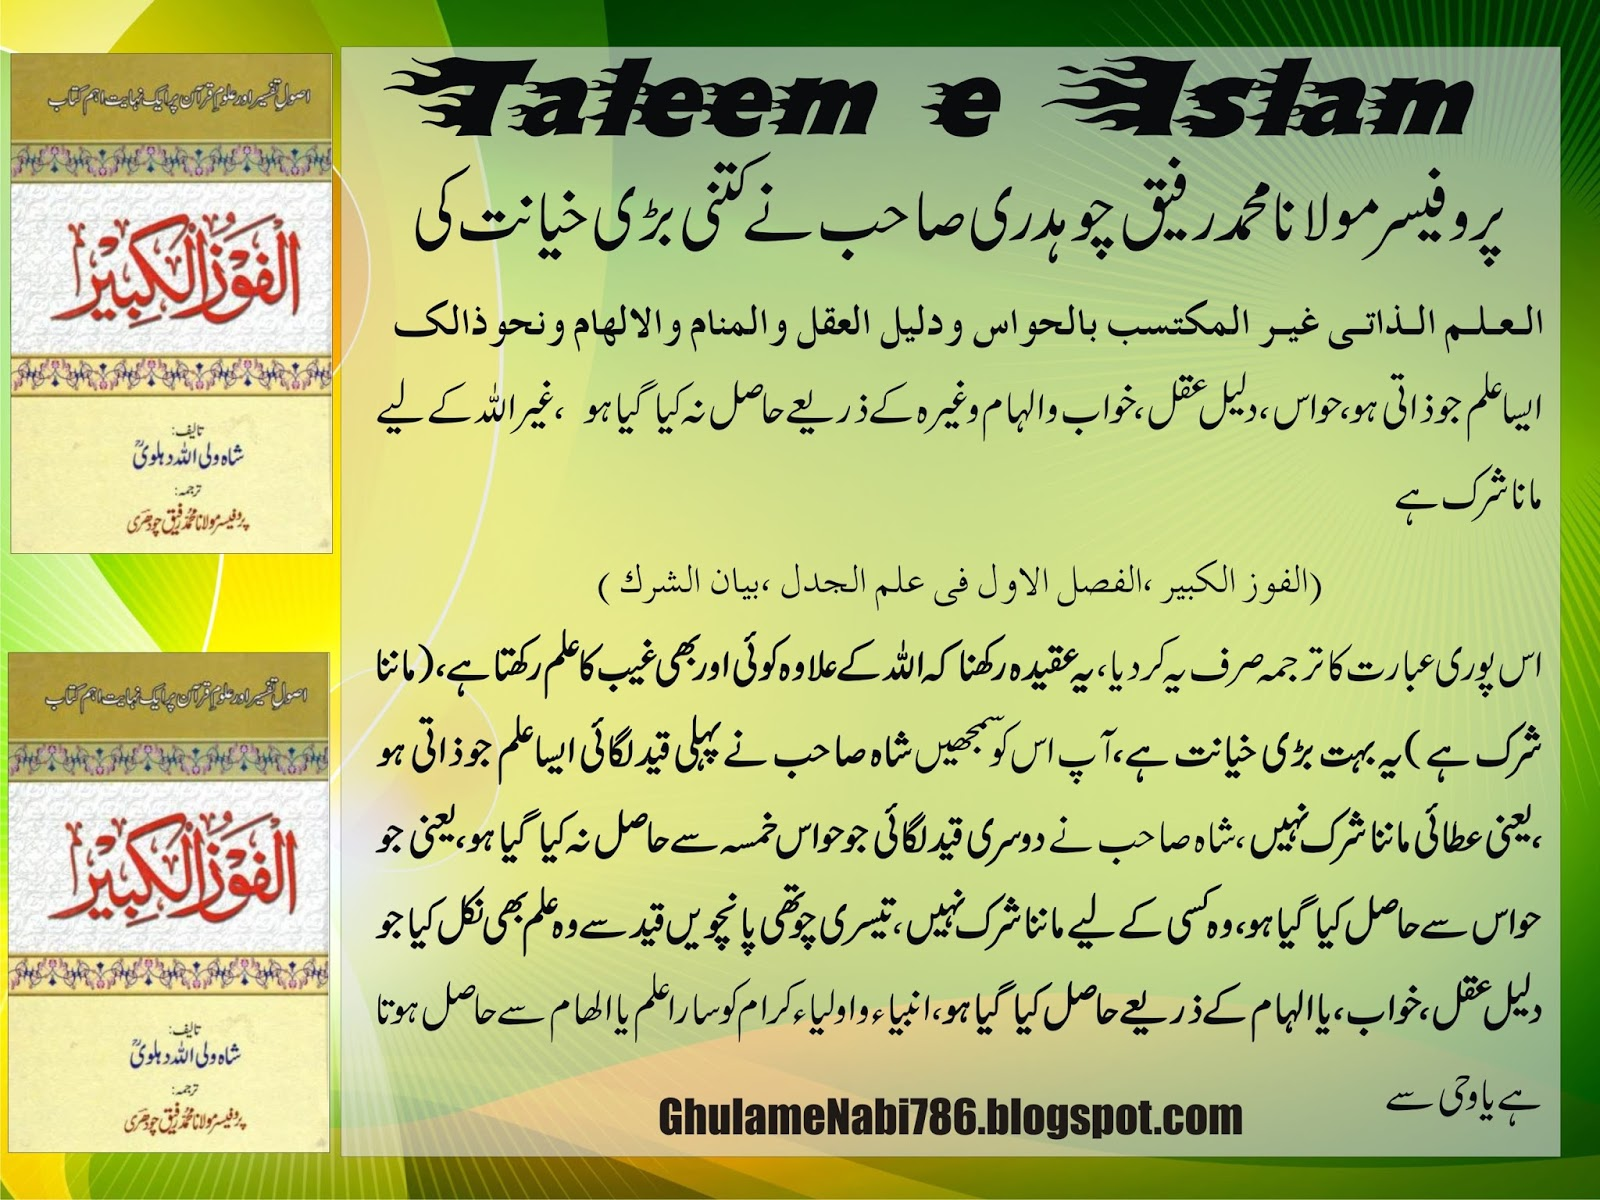 tracroyprot • Blog Archive • Shah waliullah books in urdu pdf